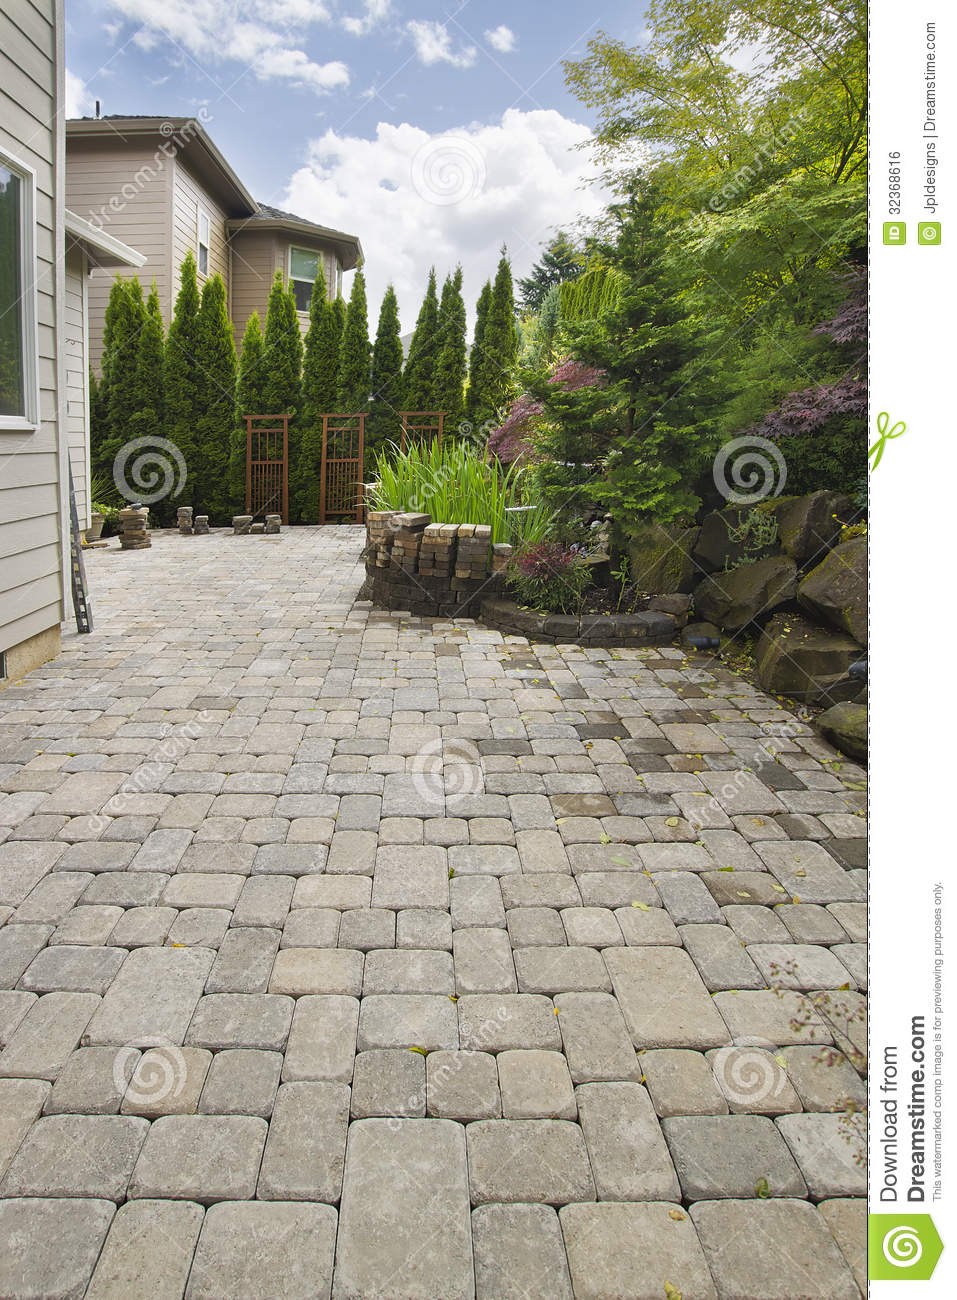 Prices On Landscaping Bricks : Backyard brick garden hardscape landscaping natural patio pavers pond